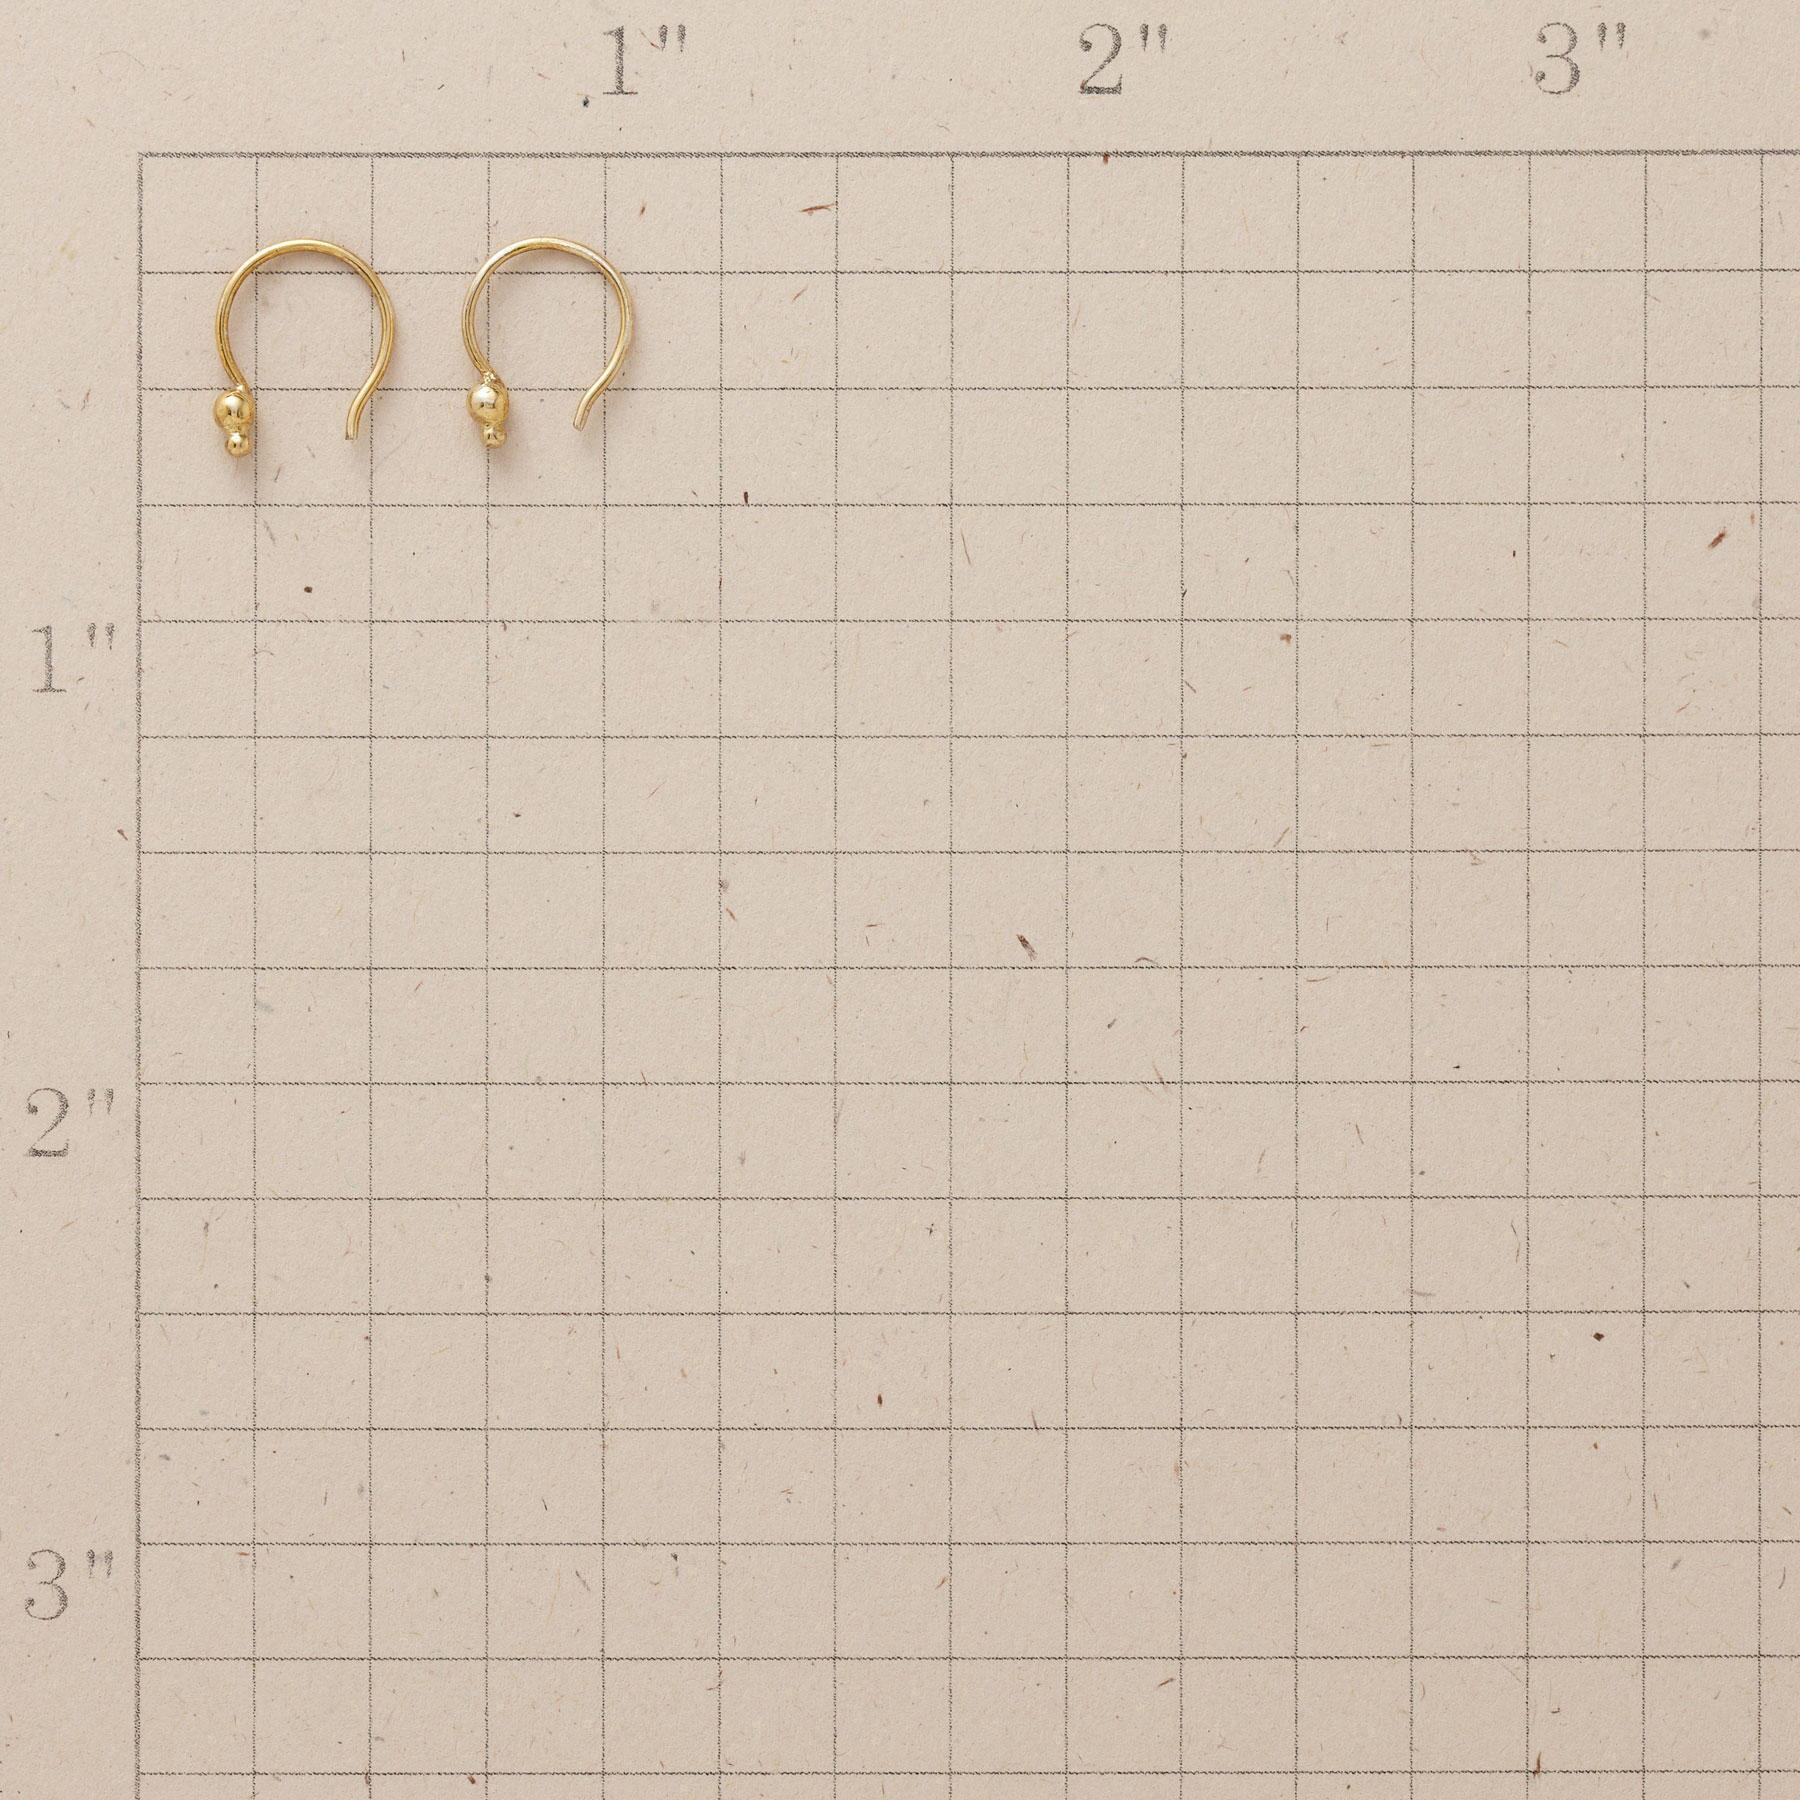 18KT GOLD PLATE DOUBLE DOT EARRINGS: View 2